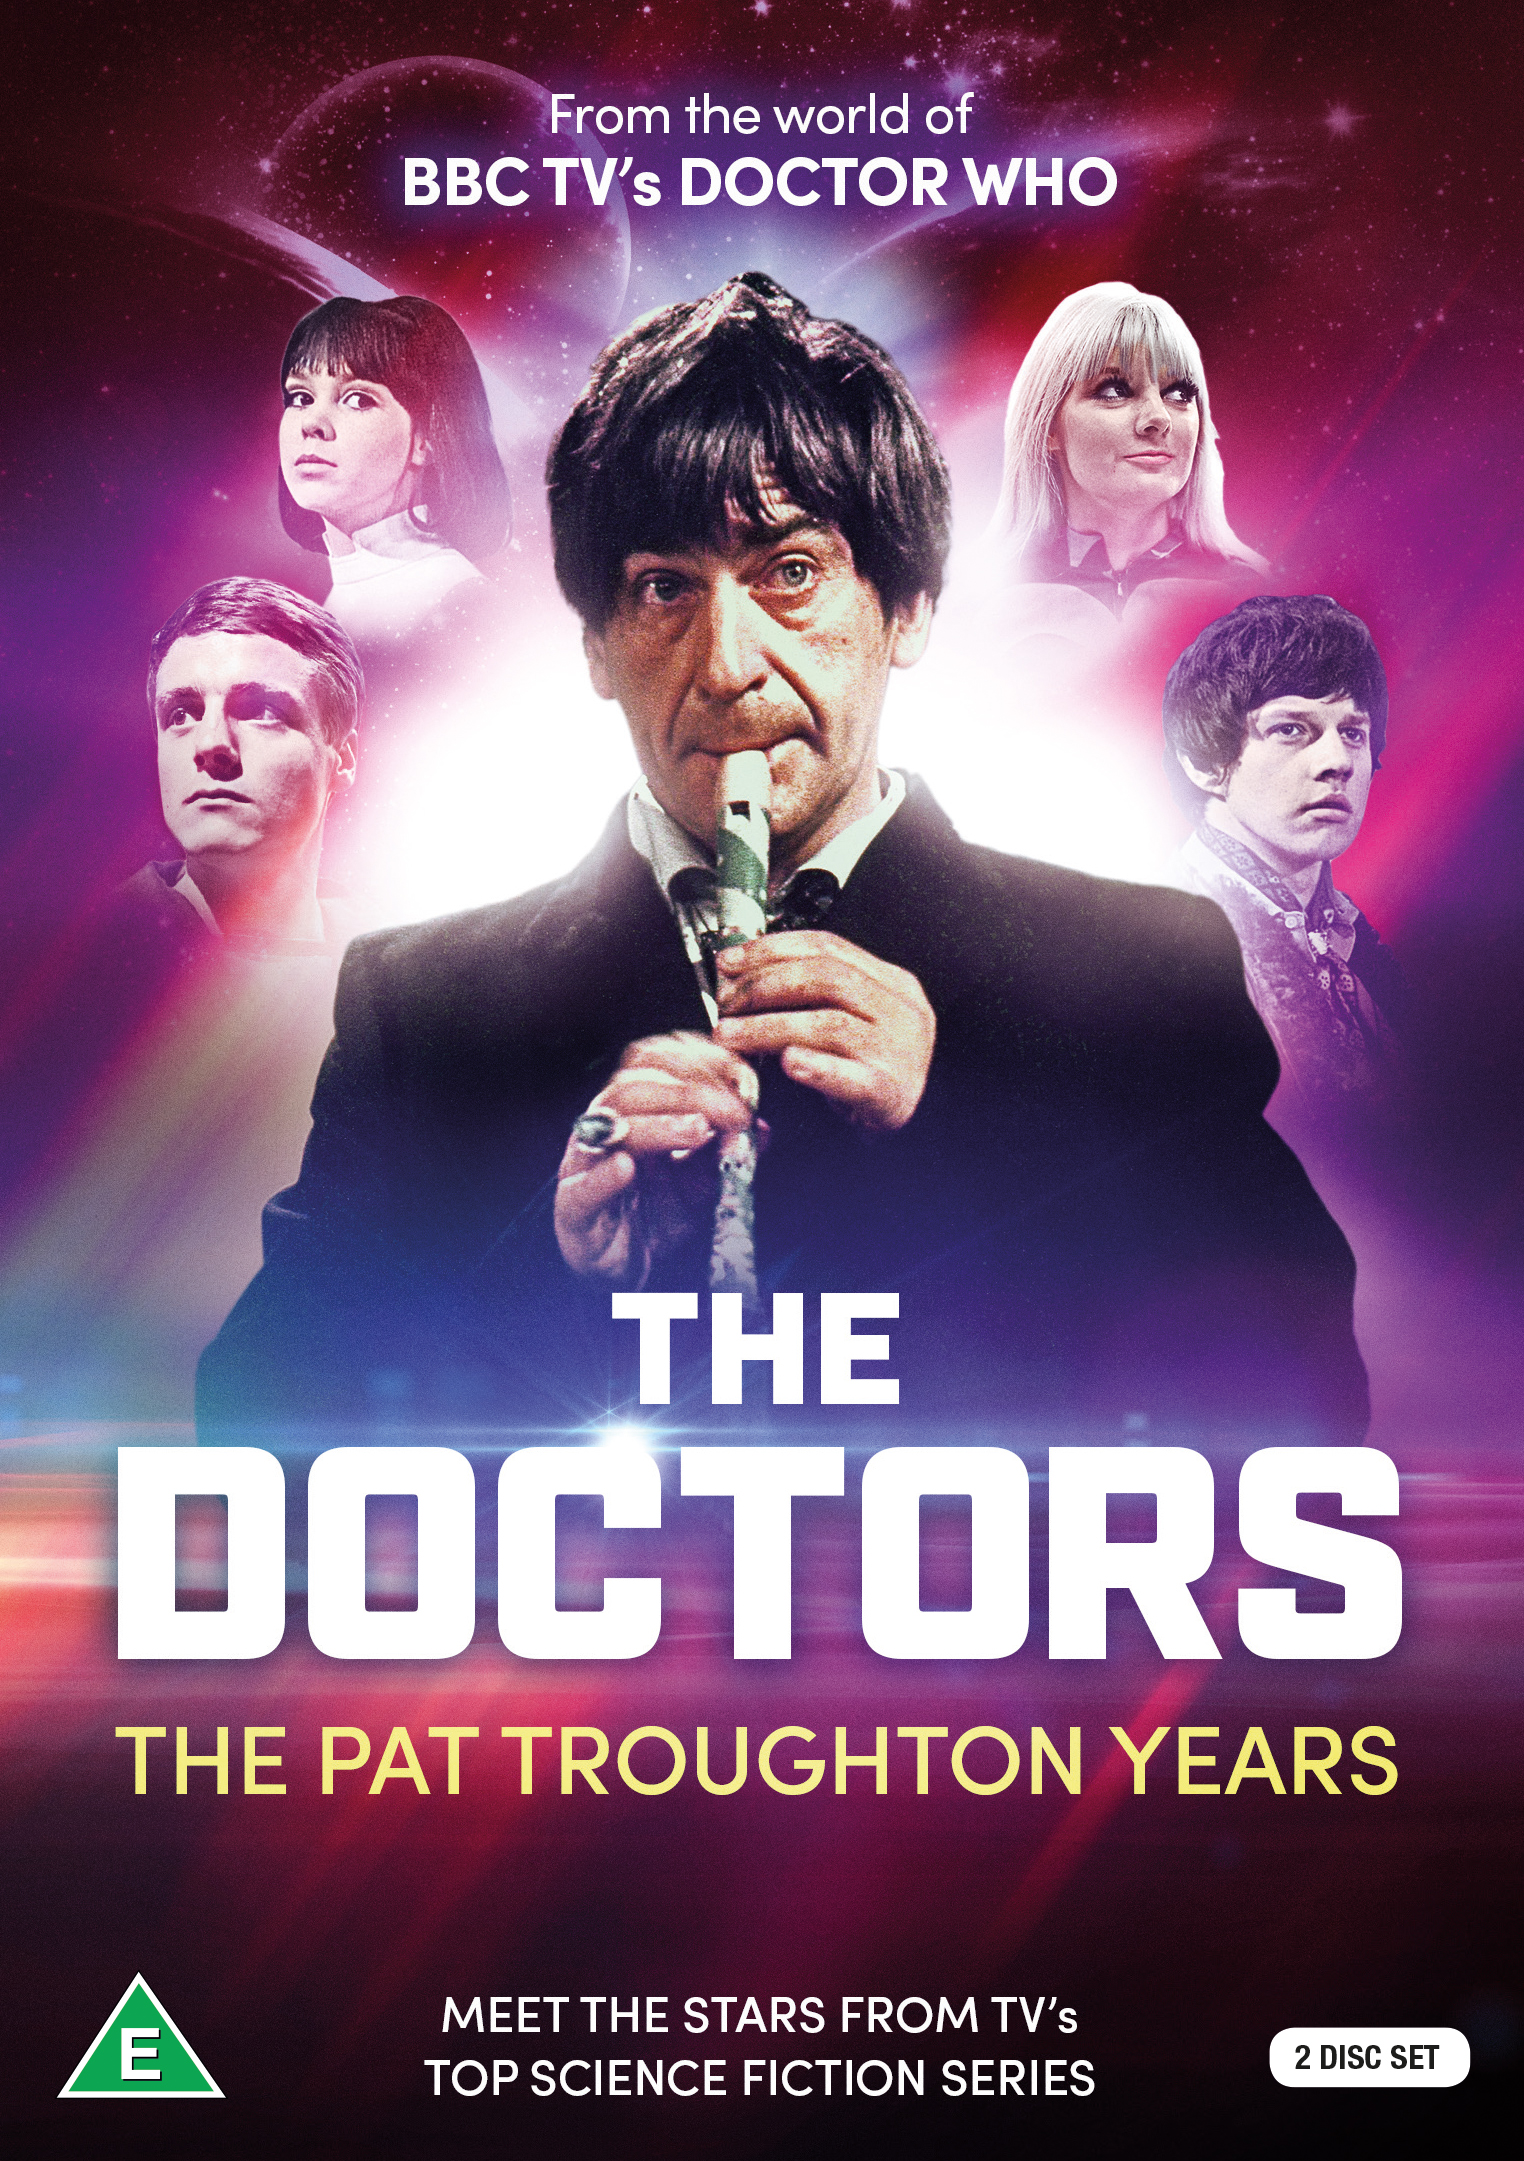 The Doctors: The Pat Troughton Years (Credit: Koch Media)